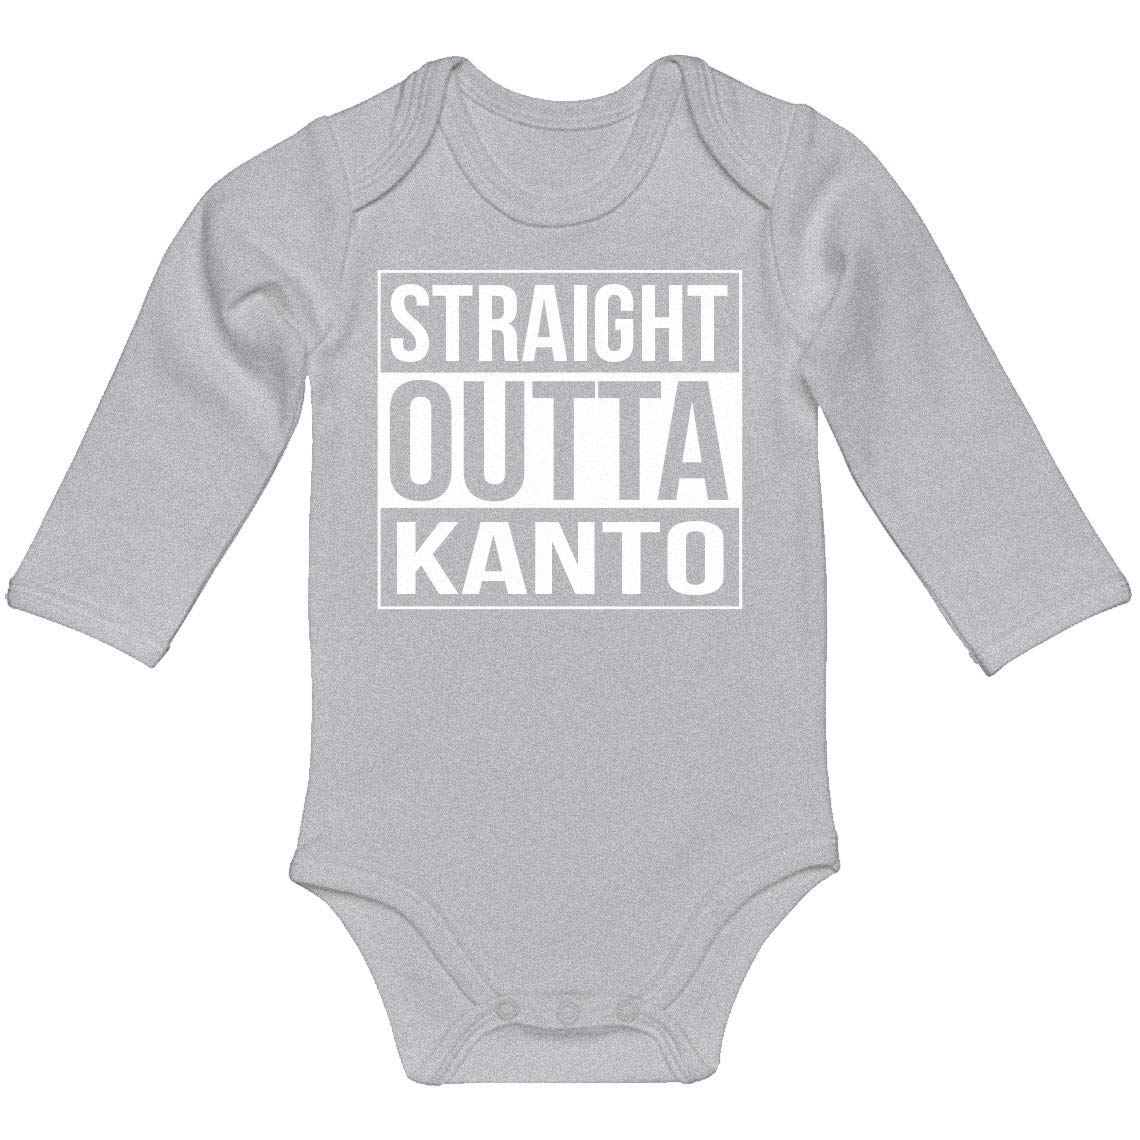 Indica Plateau Baby Romper Straight Outta Kanto 100/% Cotton Long Sleeve Infant Bodysuit